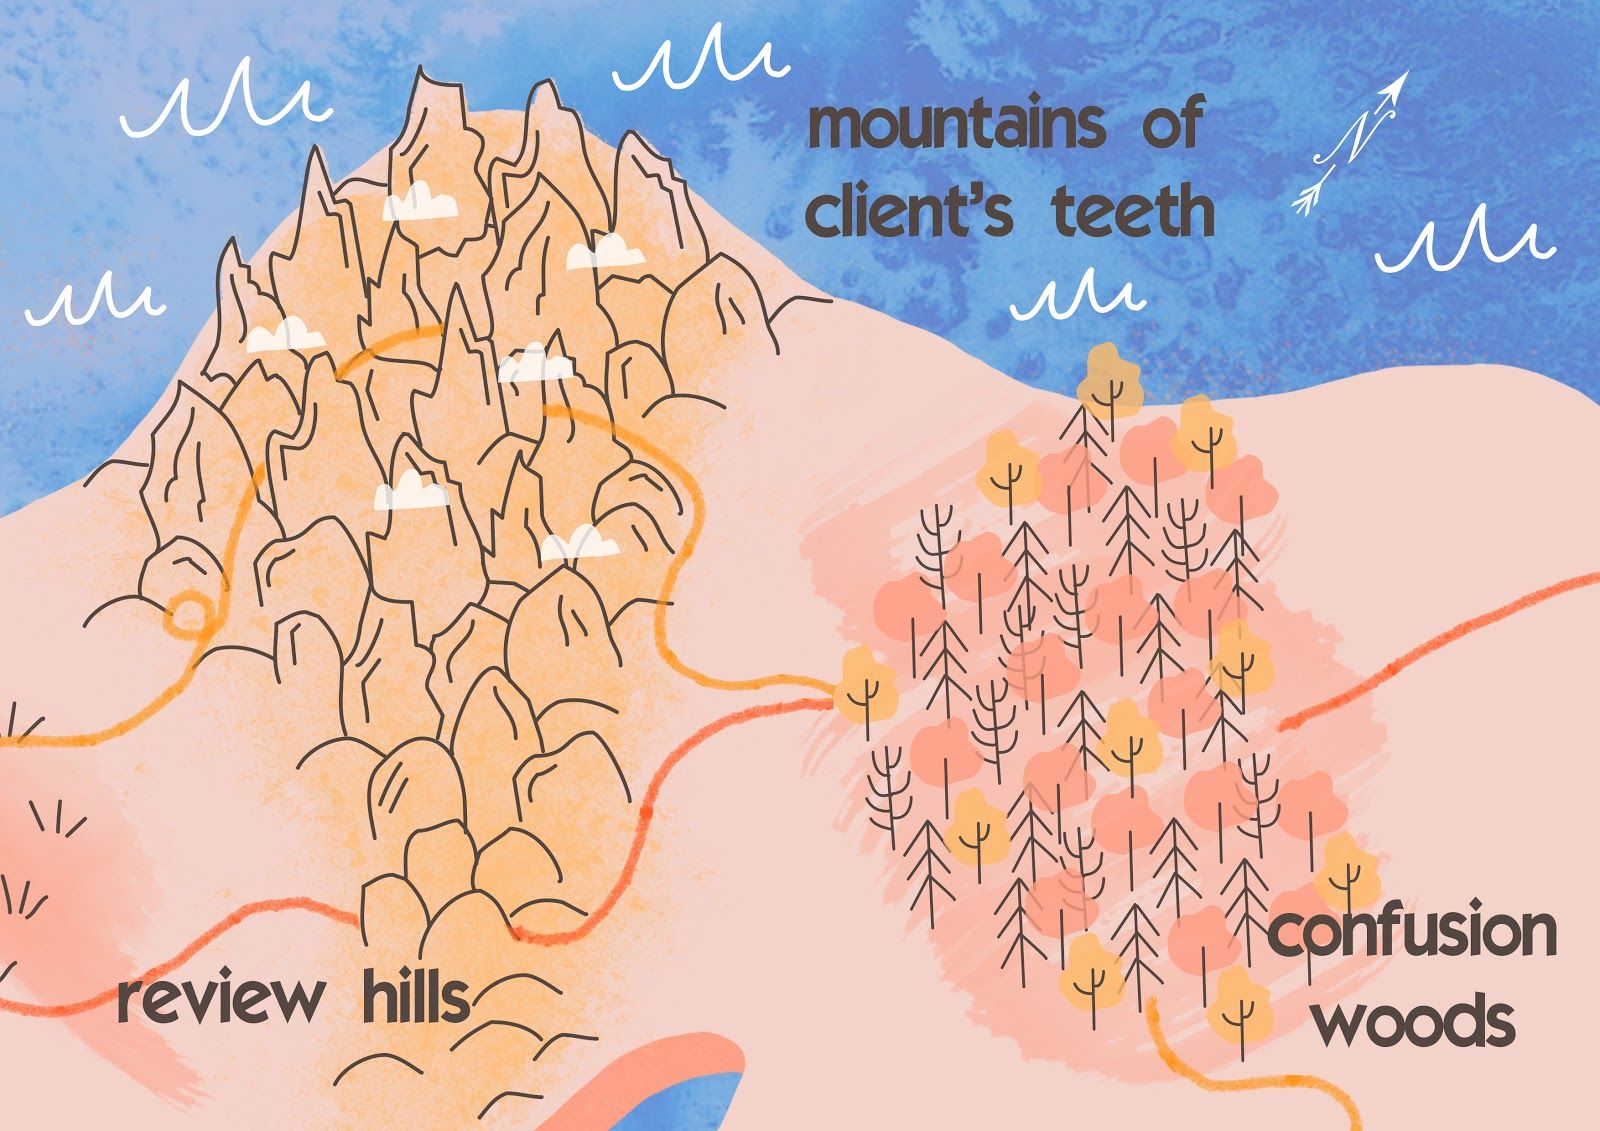 Hills are the easier way with review tool, mountains - the dangerous one without